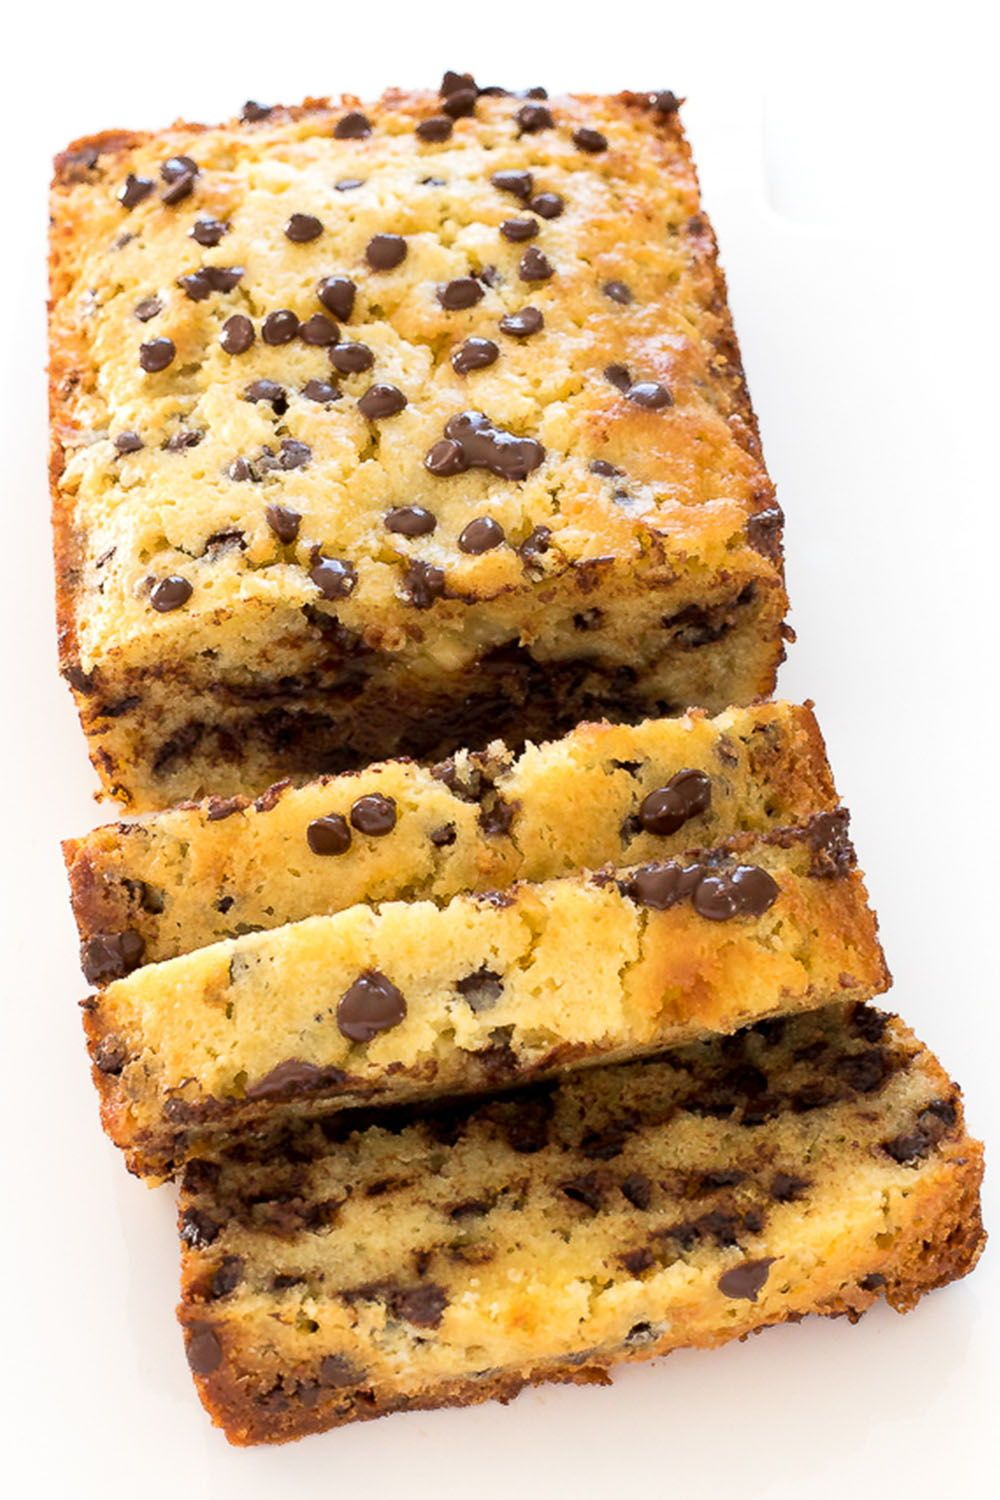 Sour Cream Chocolate Chip Pound Cake Chef Savvy Recipe In 2020 Sour Cream Pound Cake Desserts Chocolate Chip Pound Cake